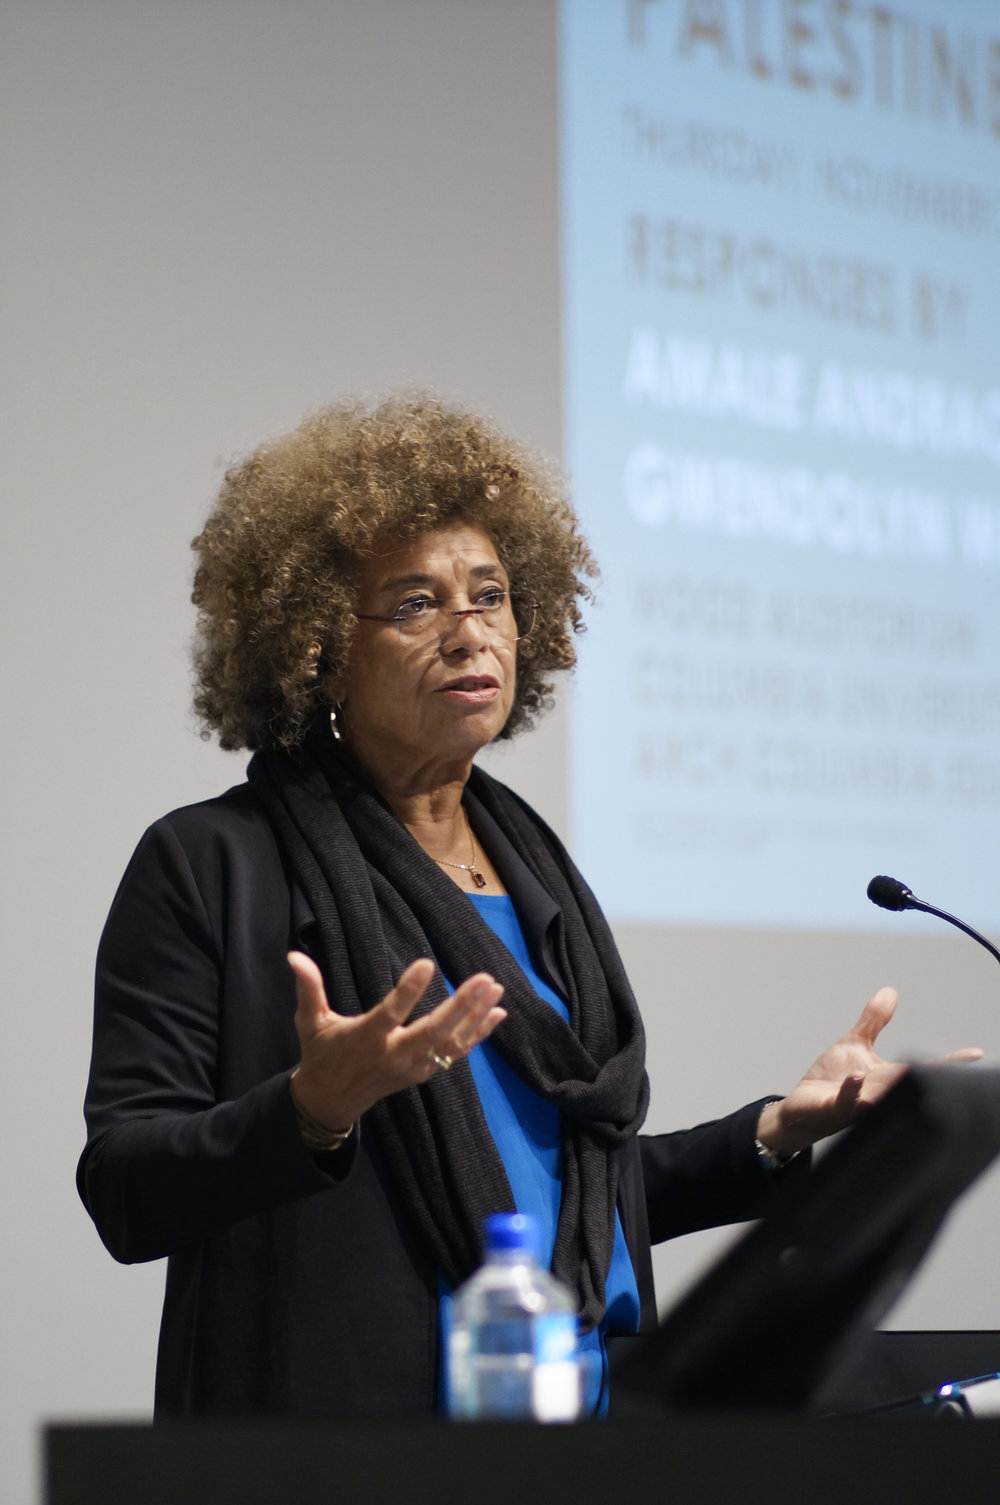 Dr. Angela Davis speaks at Columbia University in 2014. (Columbia GSAPP [CC BY 2.0 (https://creativecommons.org/licenses/by/2.0)])